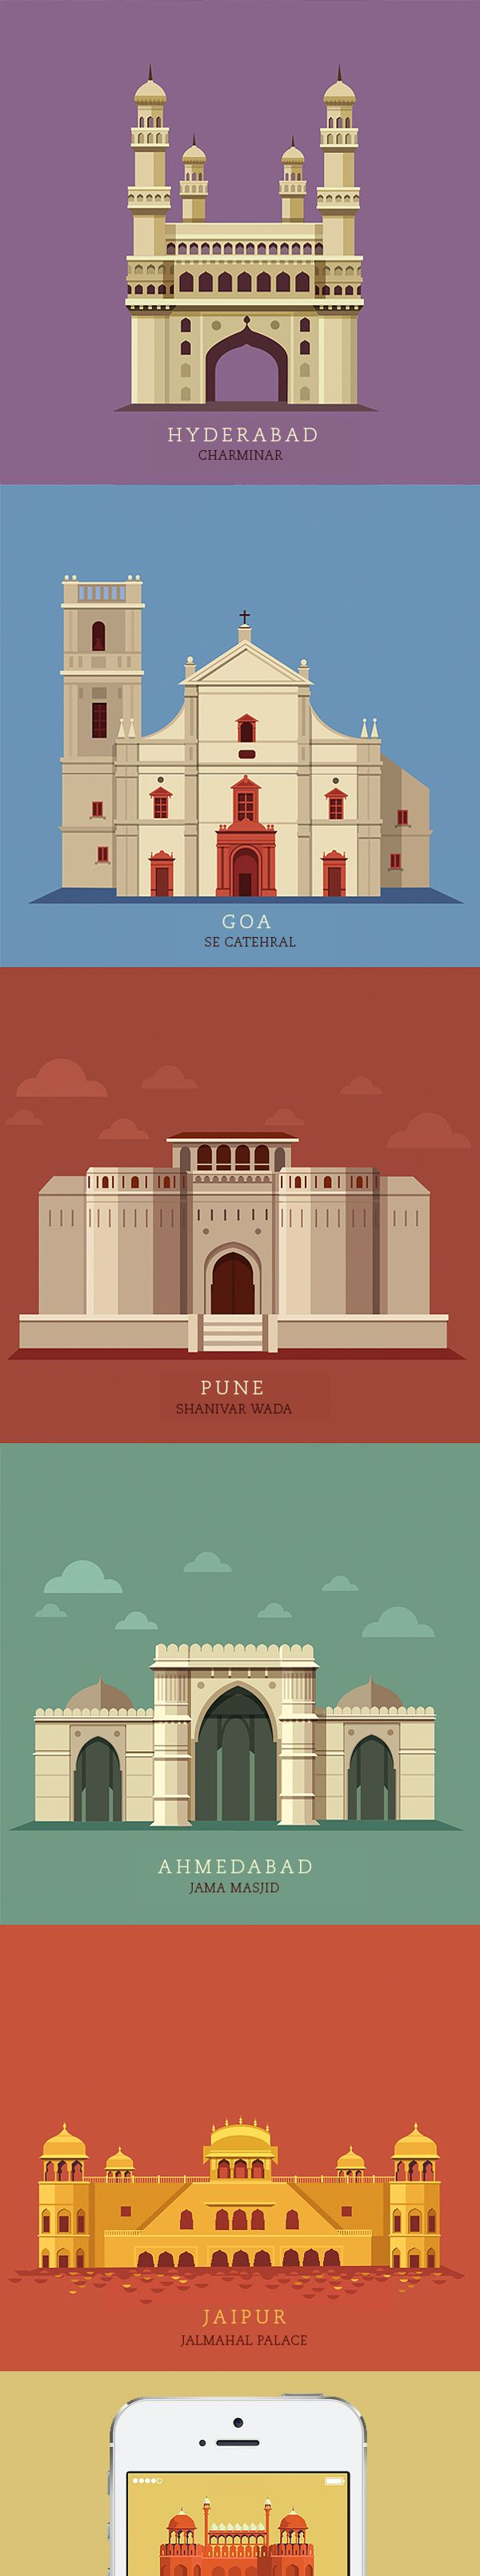 The 10 most popular cities in India illustrated